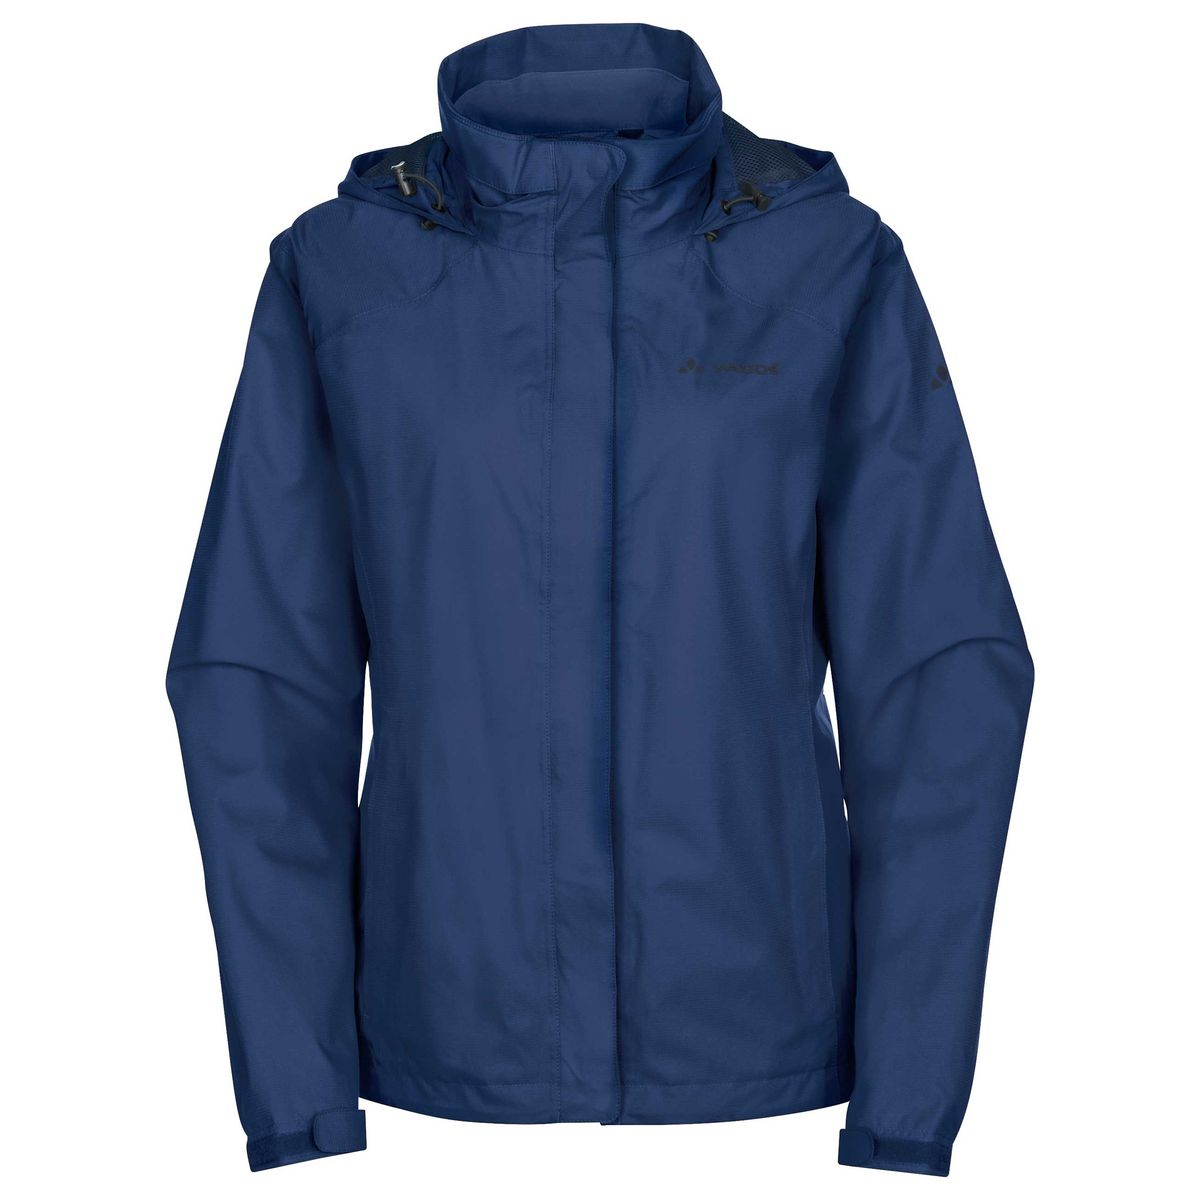 ESCAPE BIKE LIGHT JACKET Damen Allwetter Jacke